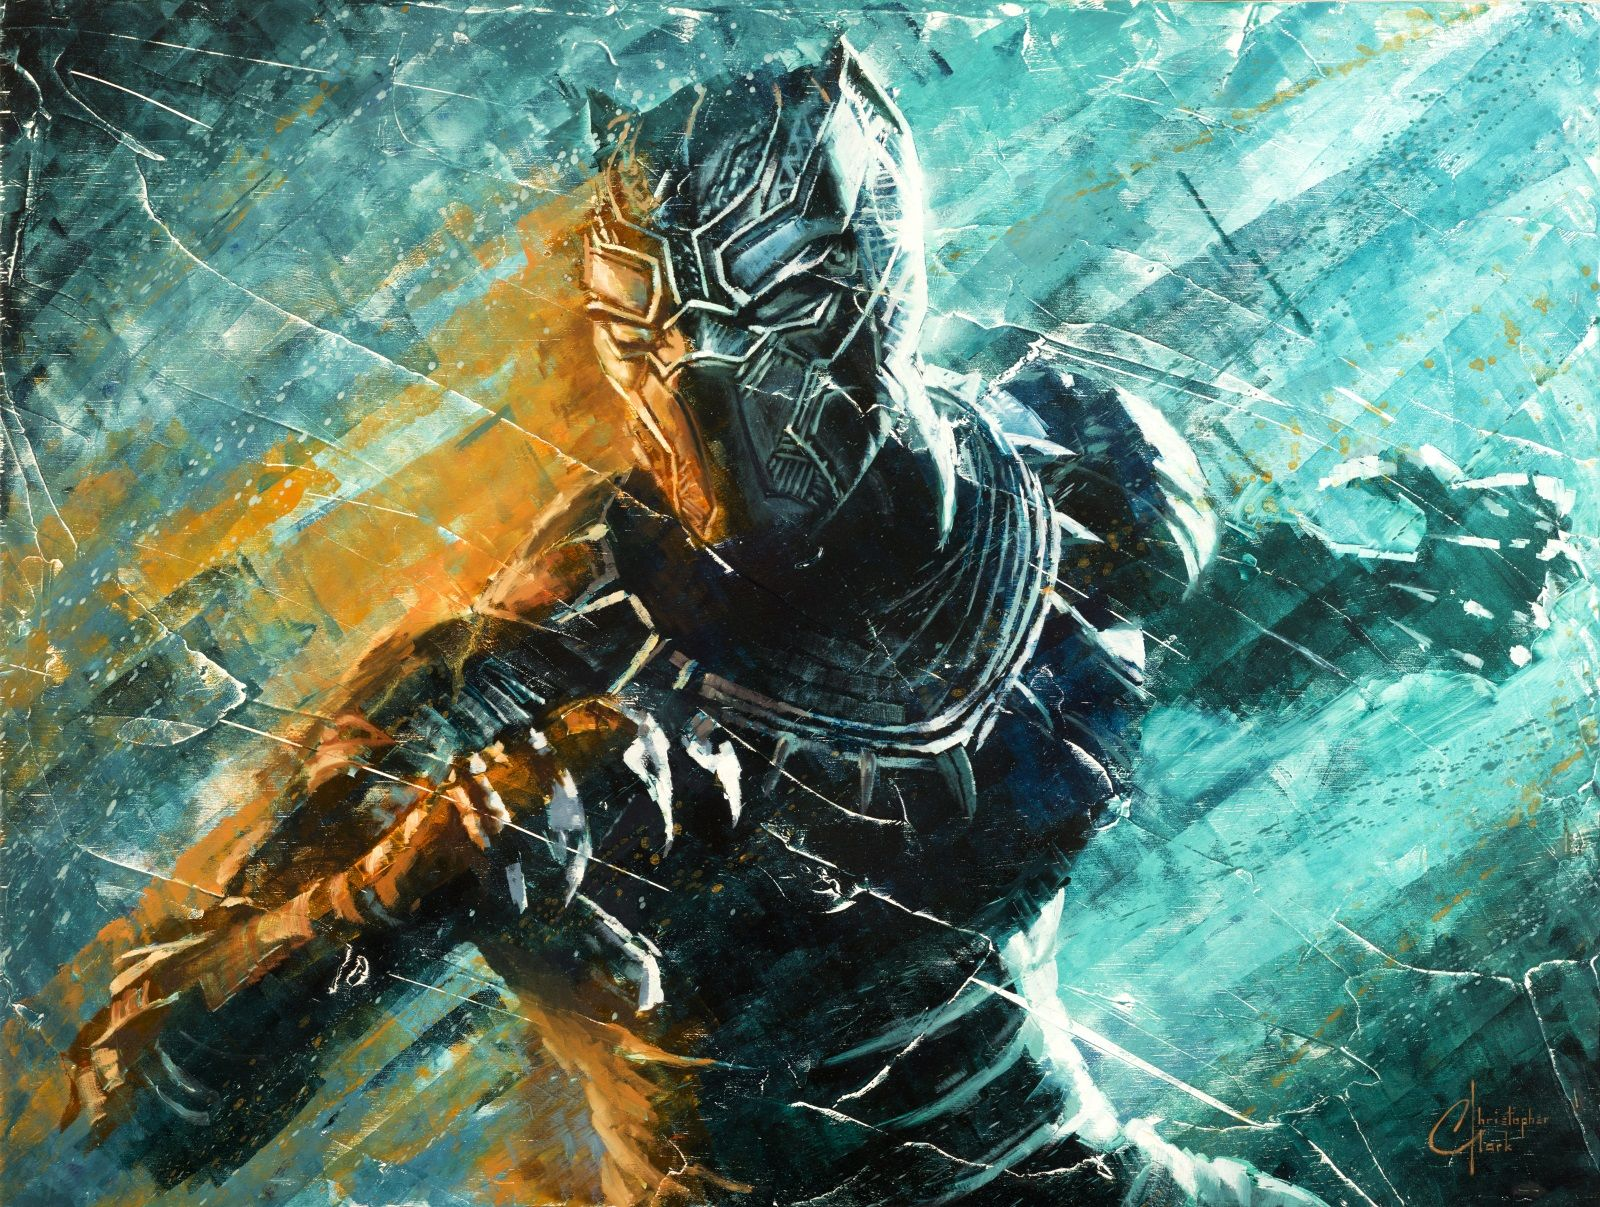 852579af135146 Black Panther by Christopher Clark - Marvel Black Panther Limited Edition  Wall Art from The Incredible Art Gallery